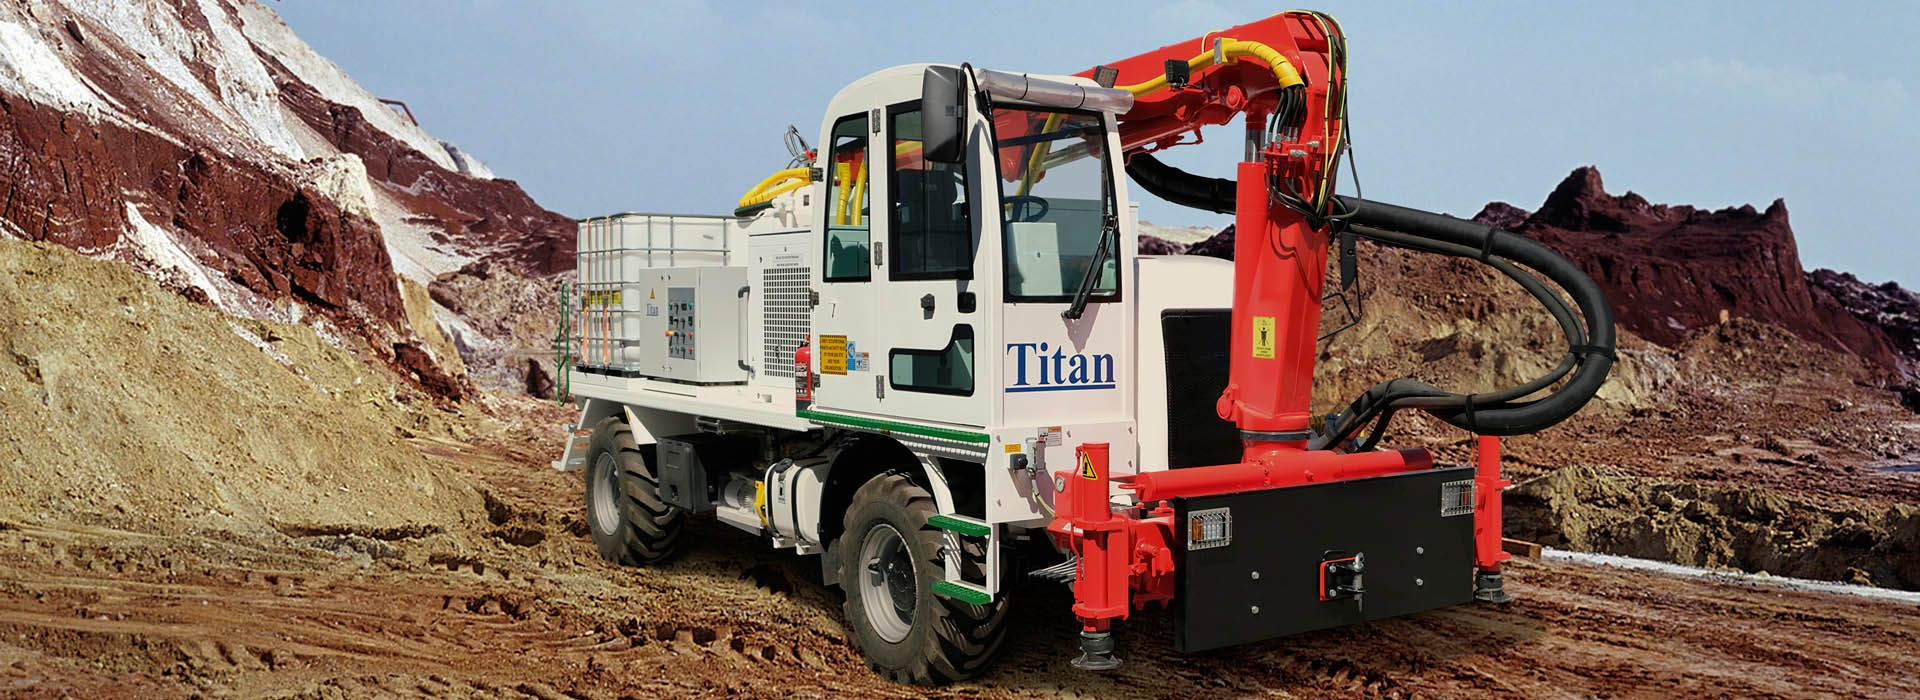 Concrete Spraying Machine Turkey